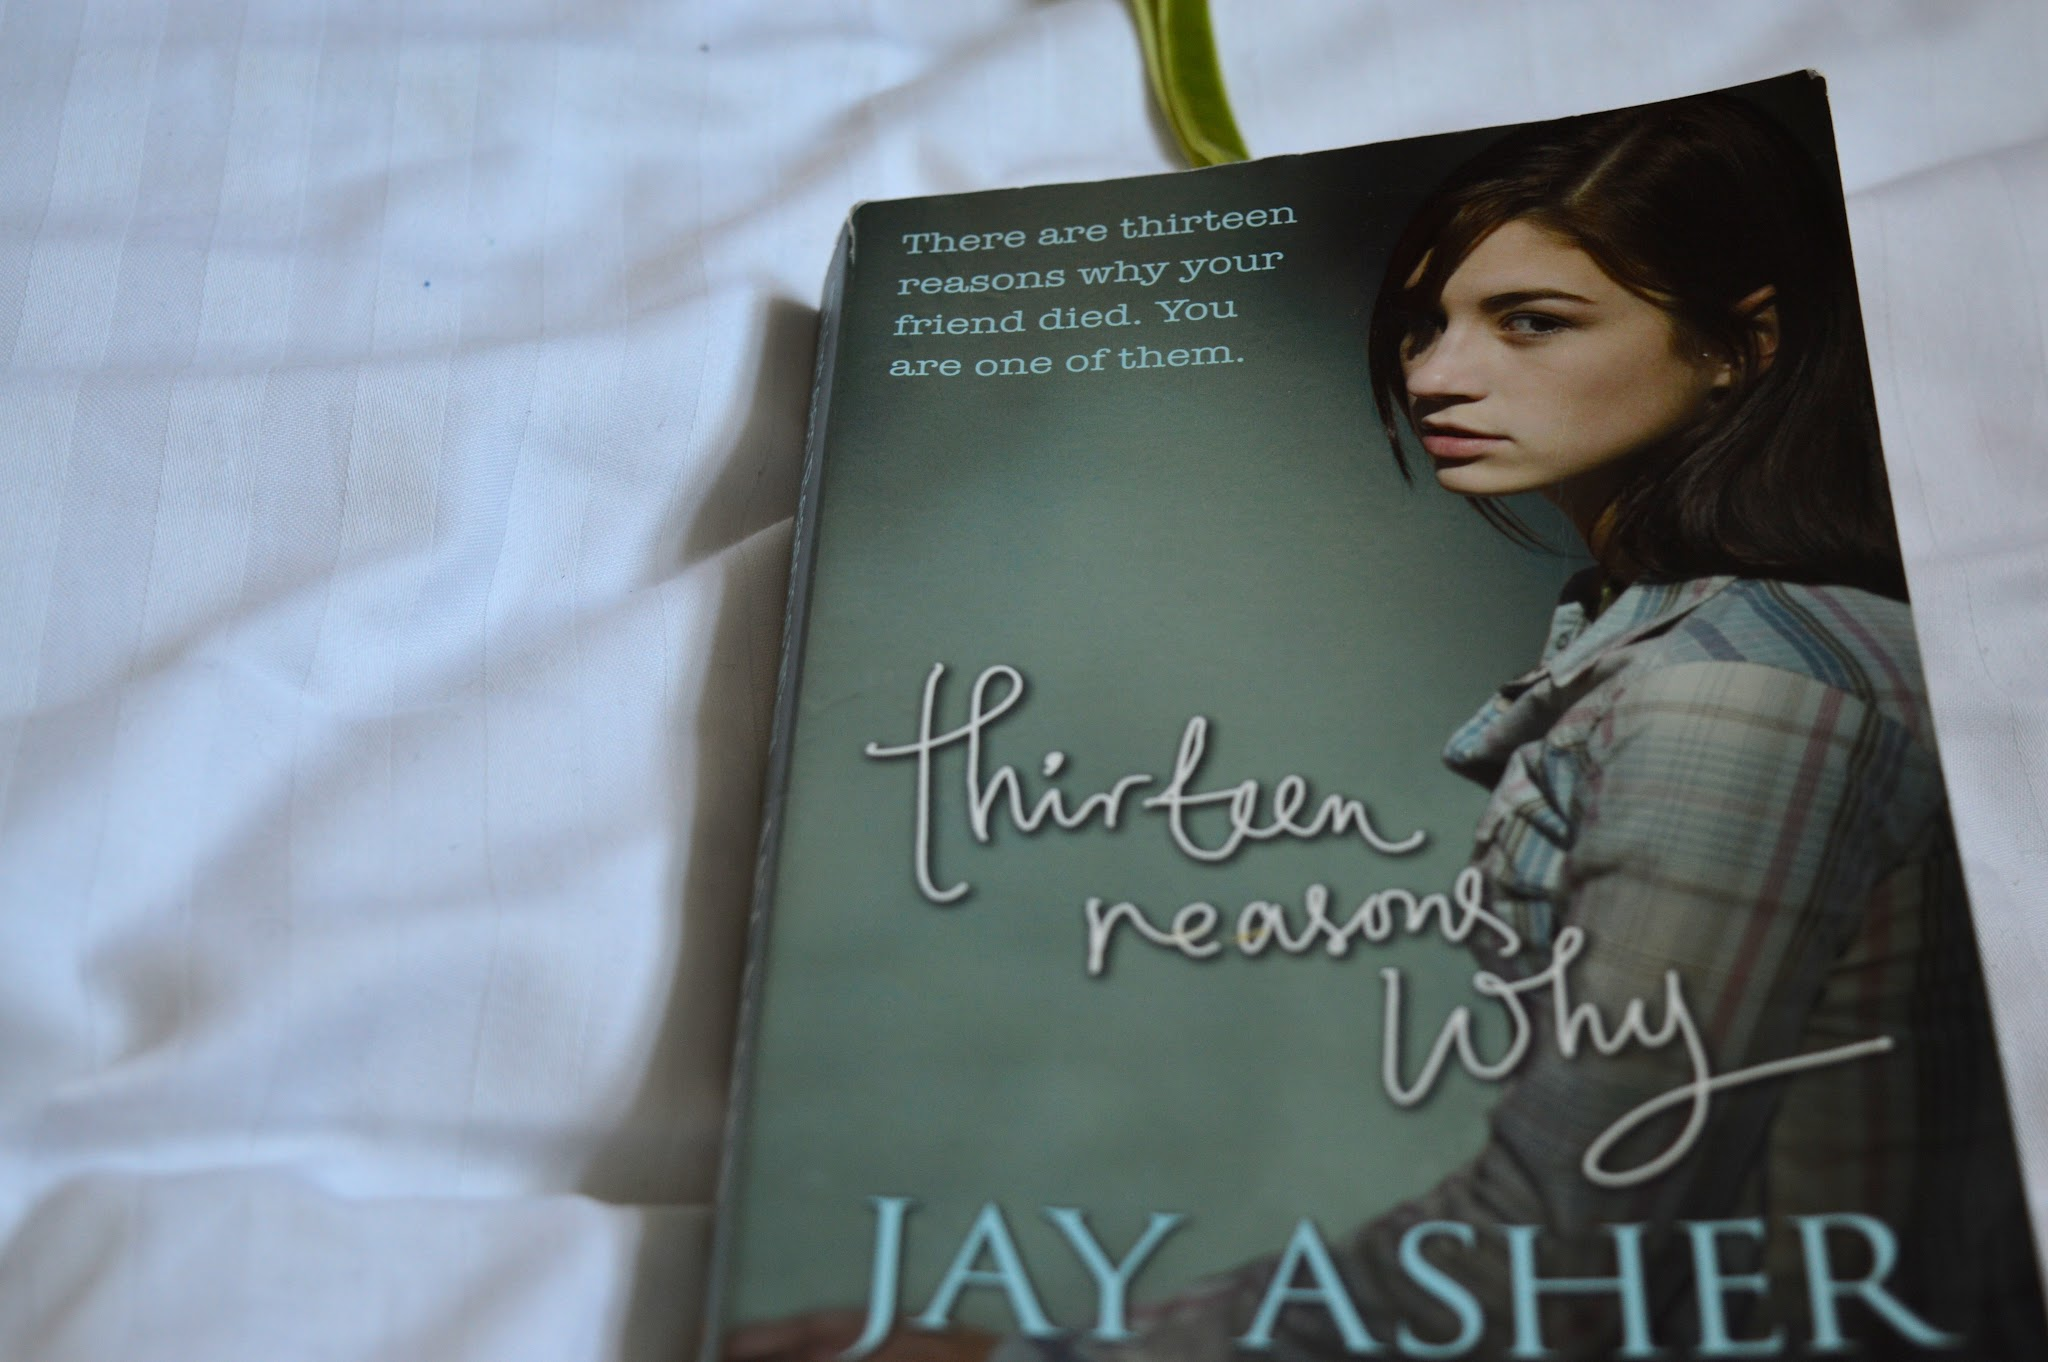 Thirteen Reasons Why by Jay Asher Paperback book image for book review